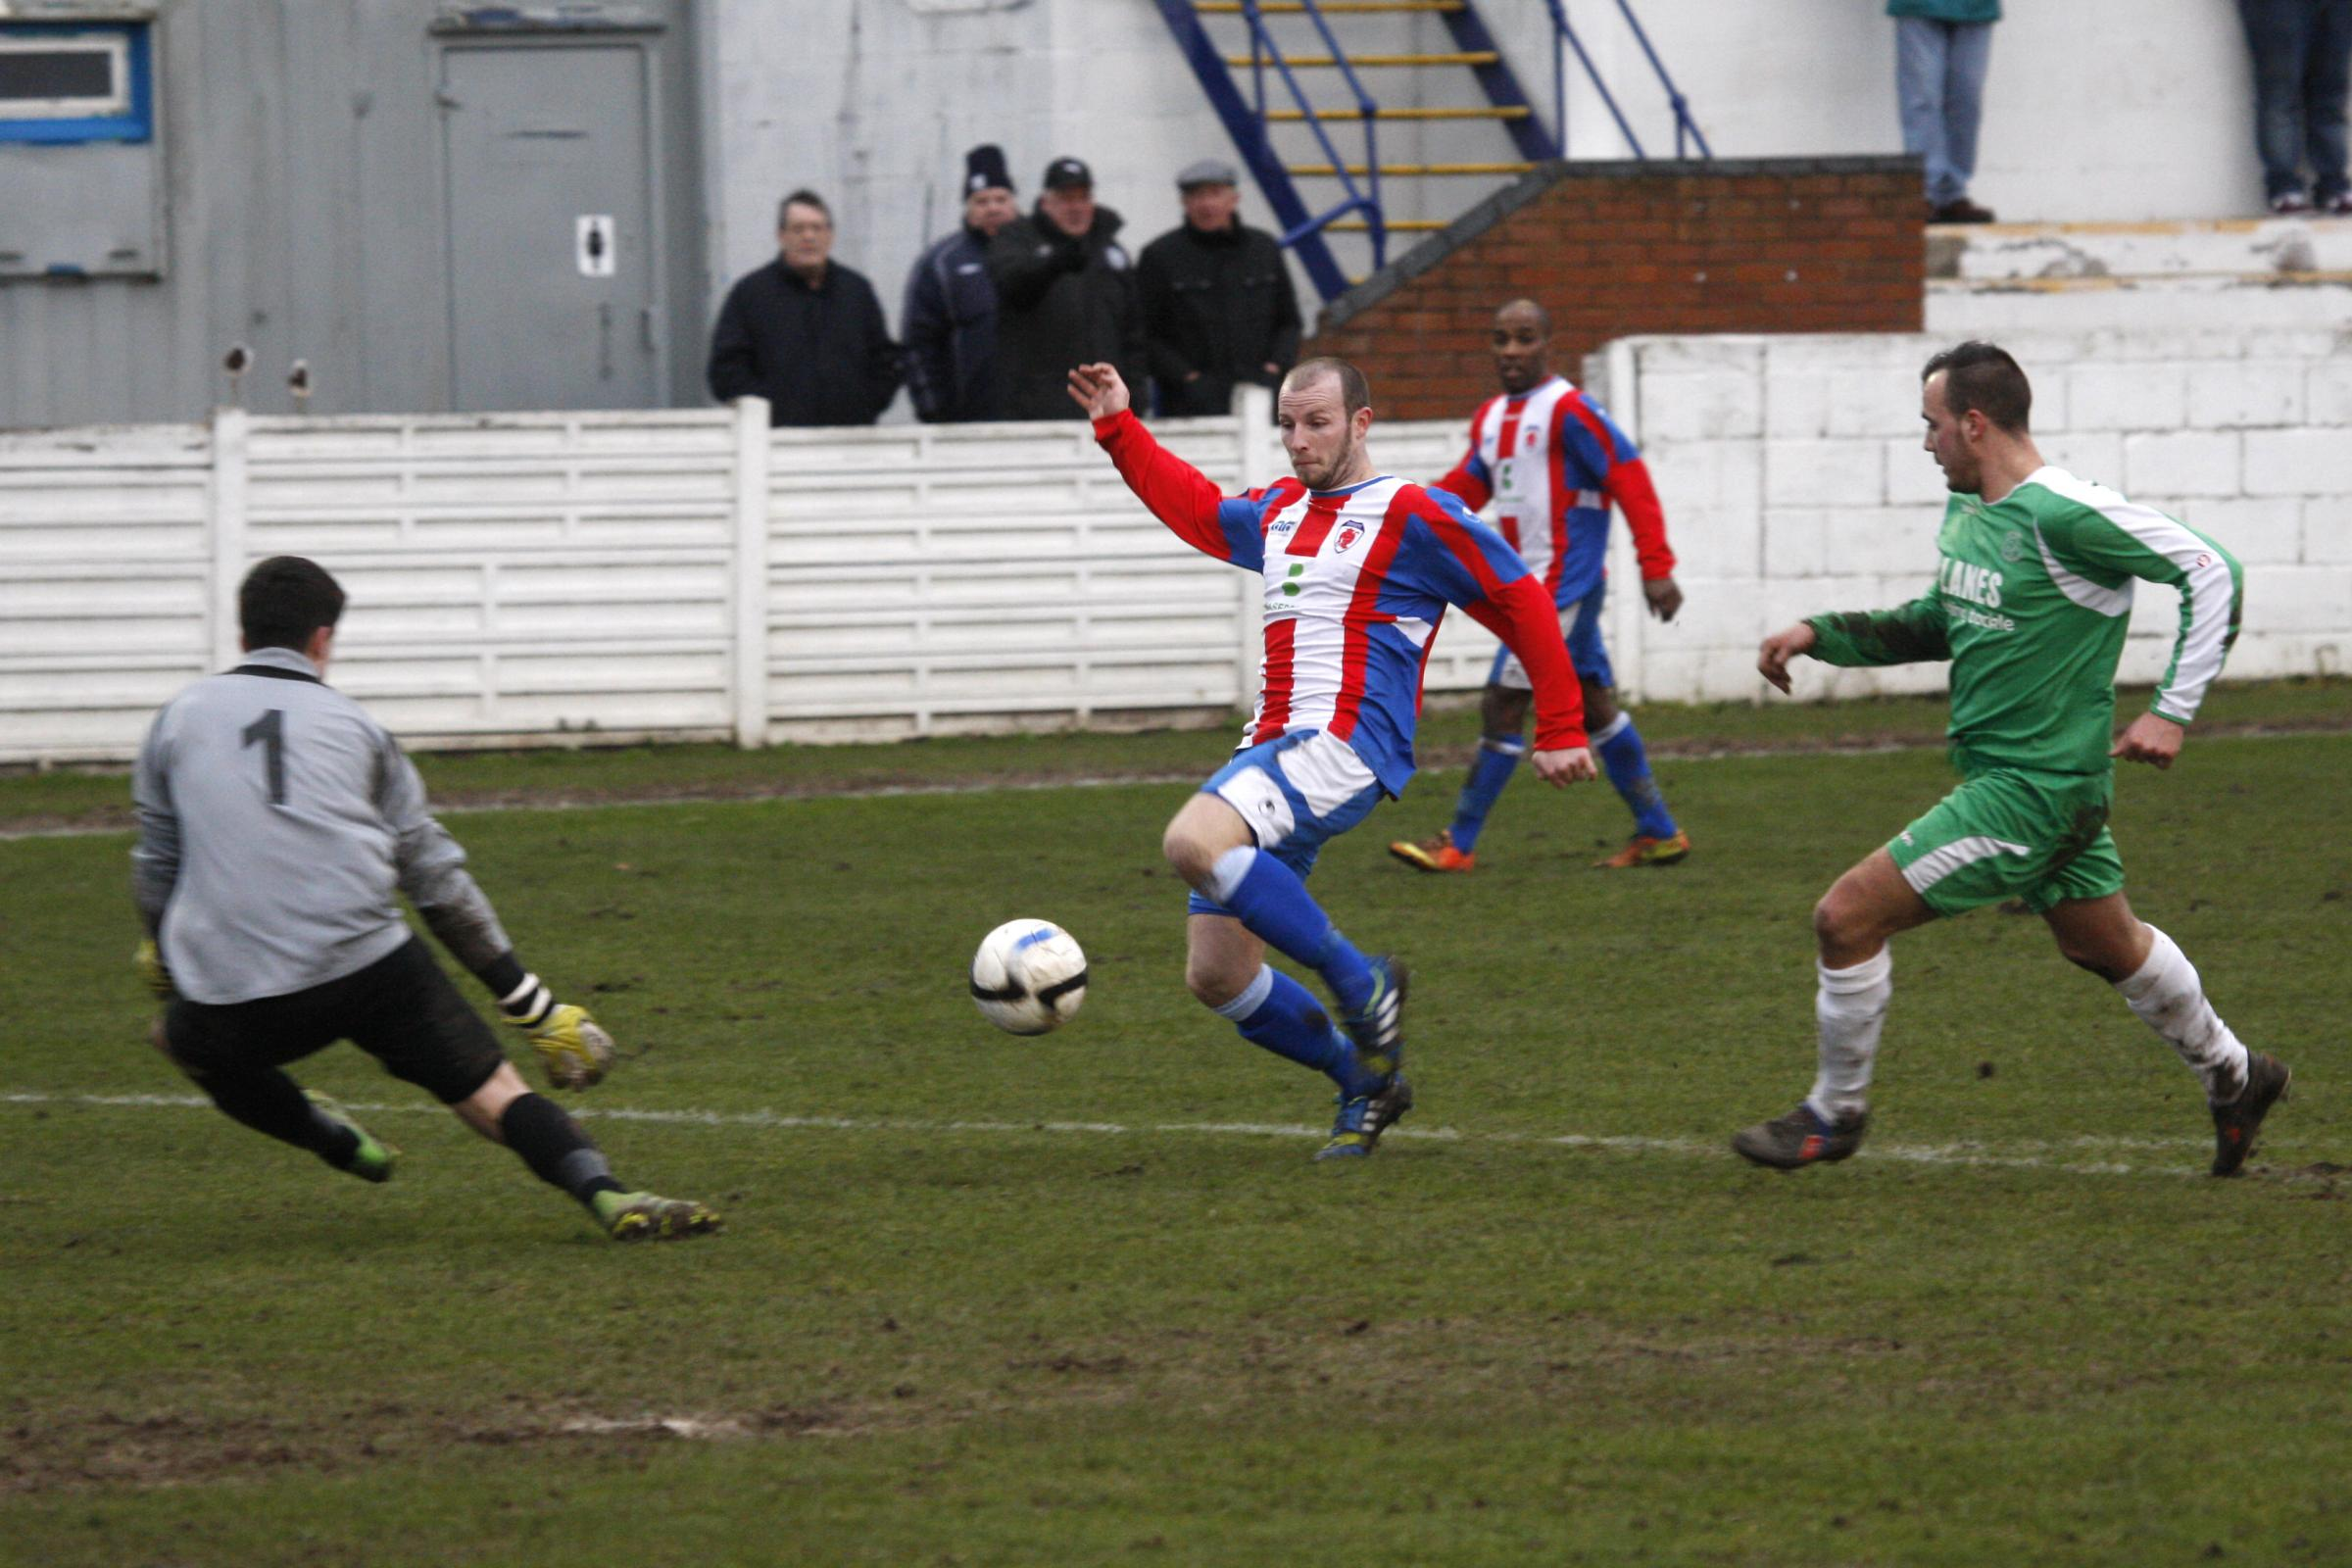 Action from Sporting's win over Coventry. Picture: CRAIG ROSS